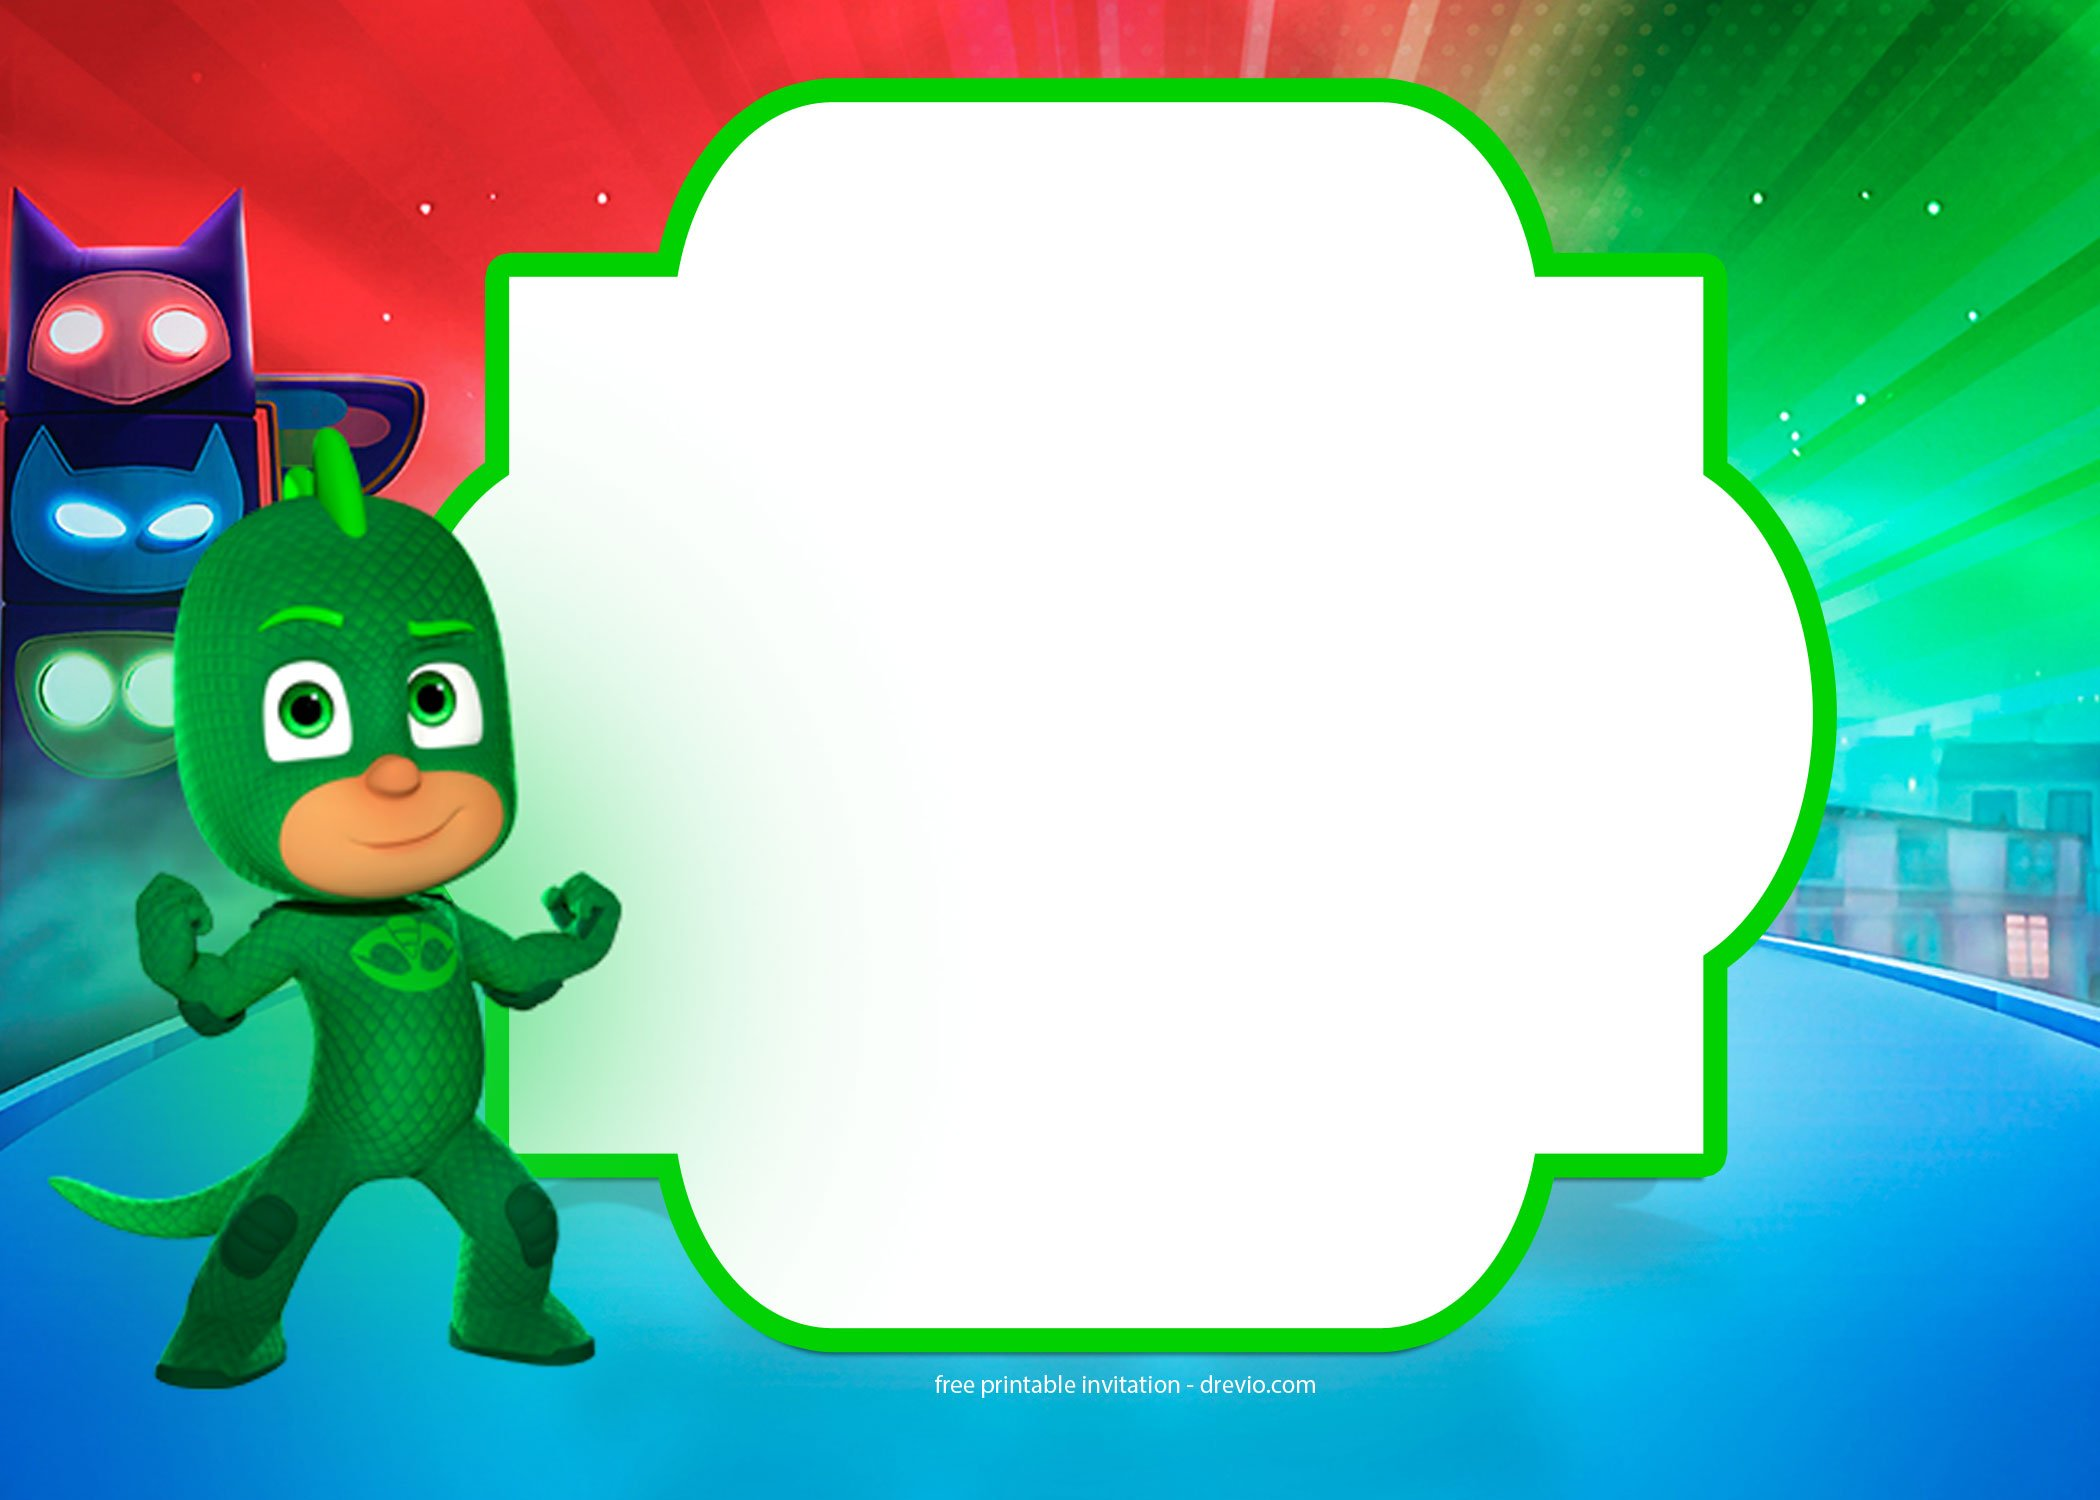 FREE PJ Masks Birthday Invitation Templates   FREE Invitation         then you will be able to add some fancy texts and your own photo on the  invitation  Here are our FREE PJ Masks Invitation templates